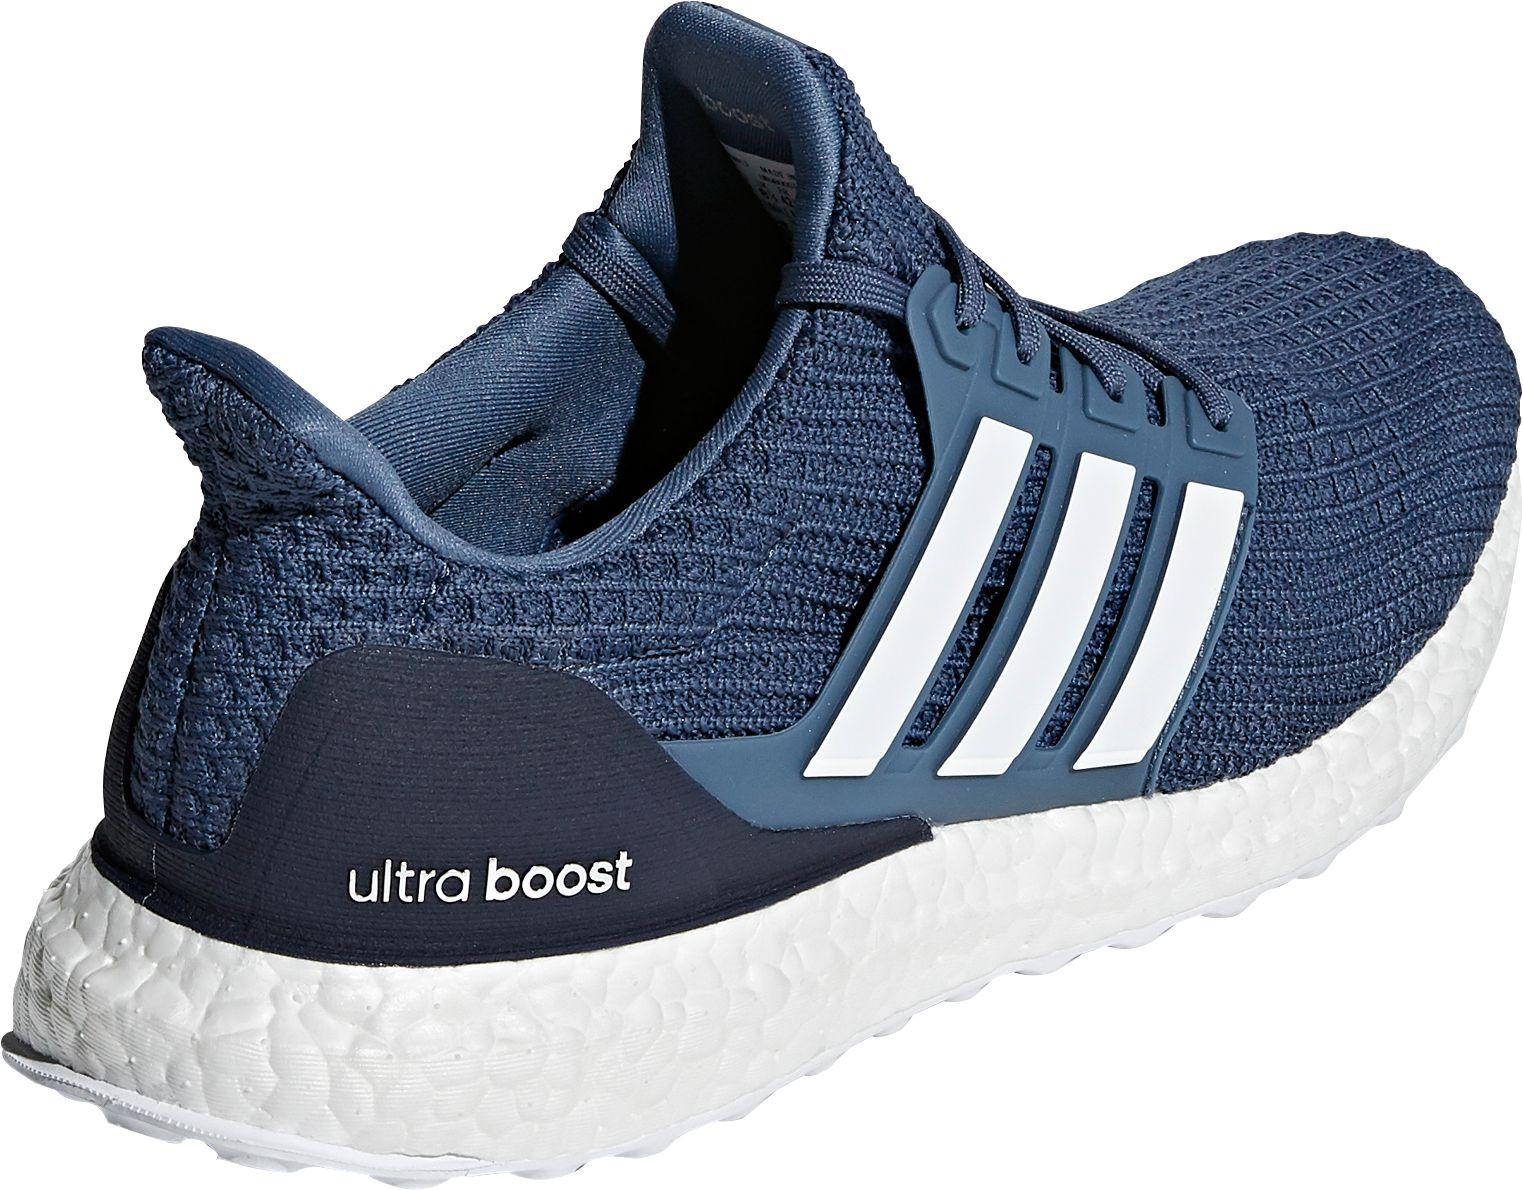 Blue Ultraboost For In Adidas Dna Running Shoes Men Lyst fYRqww